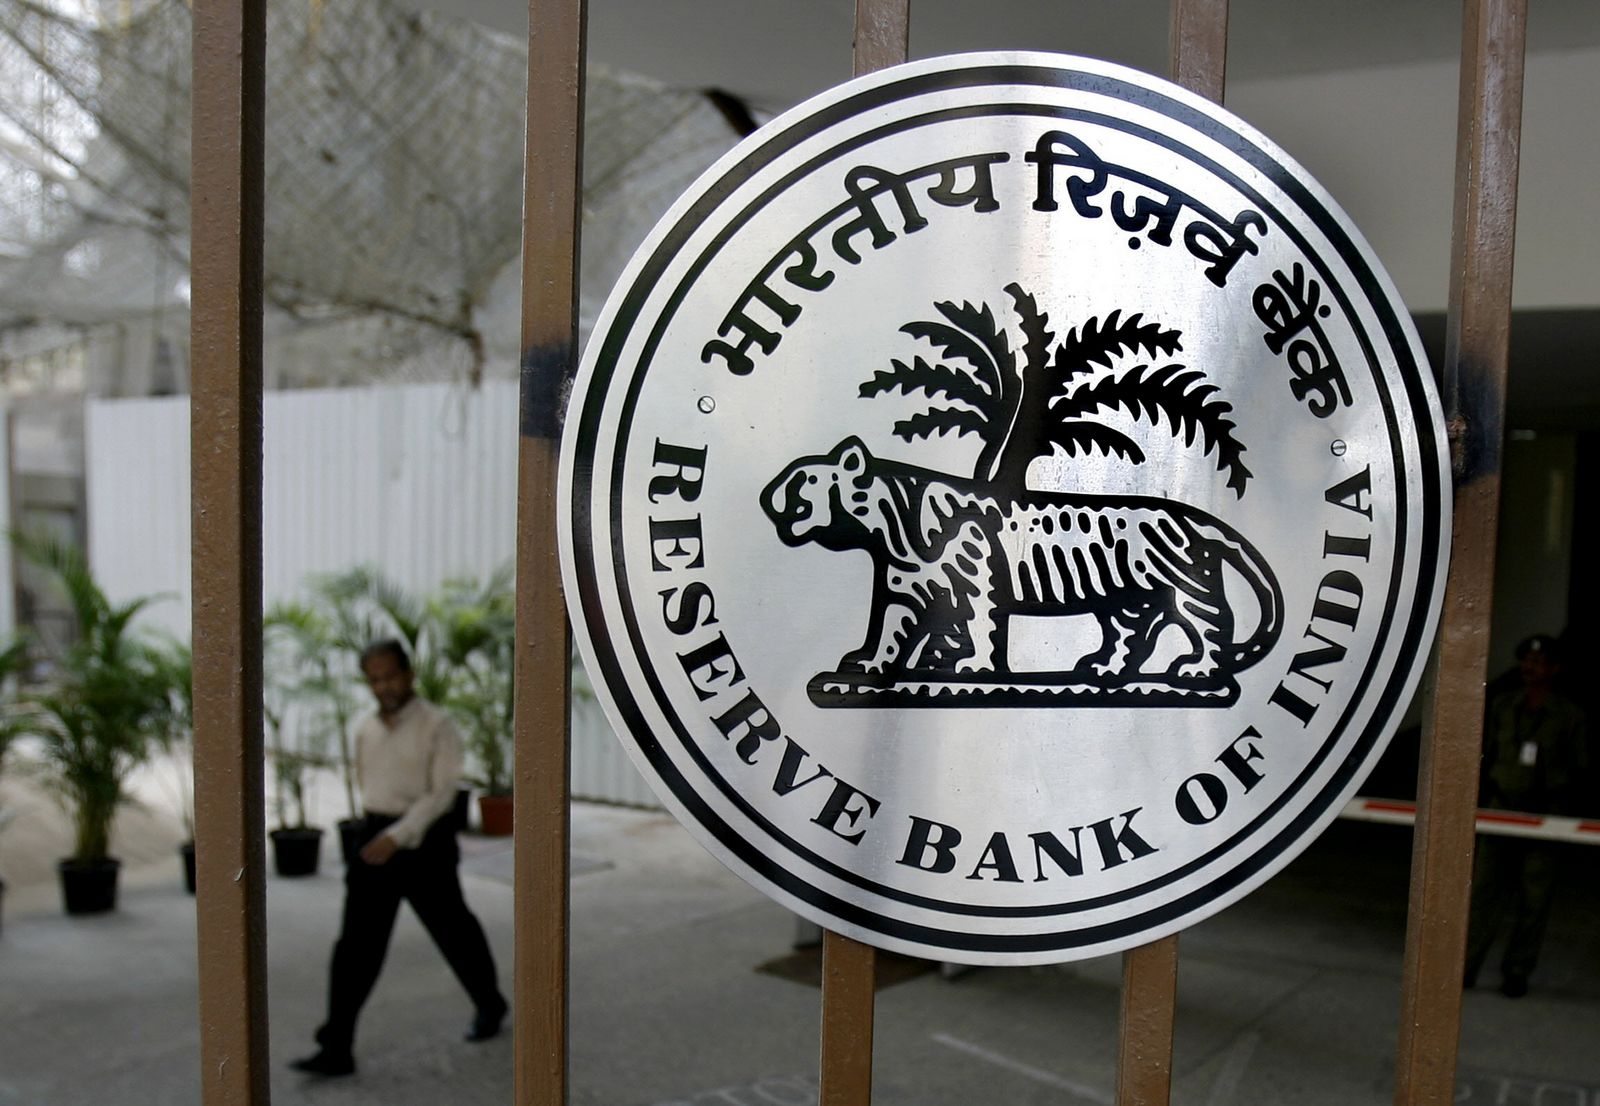 reserve bank of india The governor of the reserve bank of india is the chief executive of india's central bank and the ex-officio chairperson of its central board of directors indian rupee currency notes, issued by the reserve bank of india (rbi), bear the governor's signature.